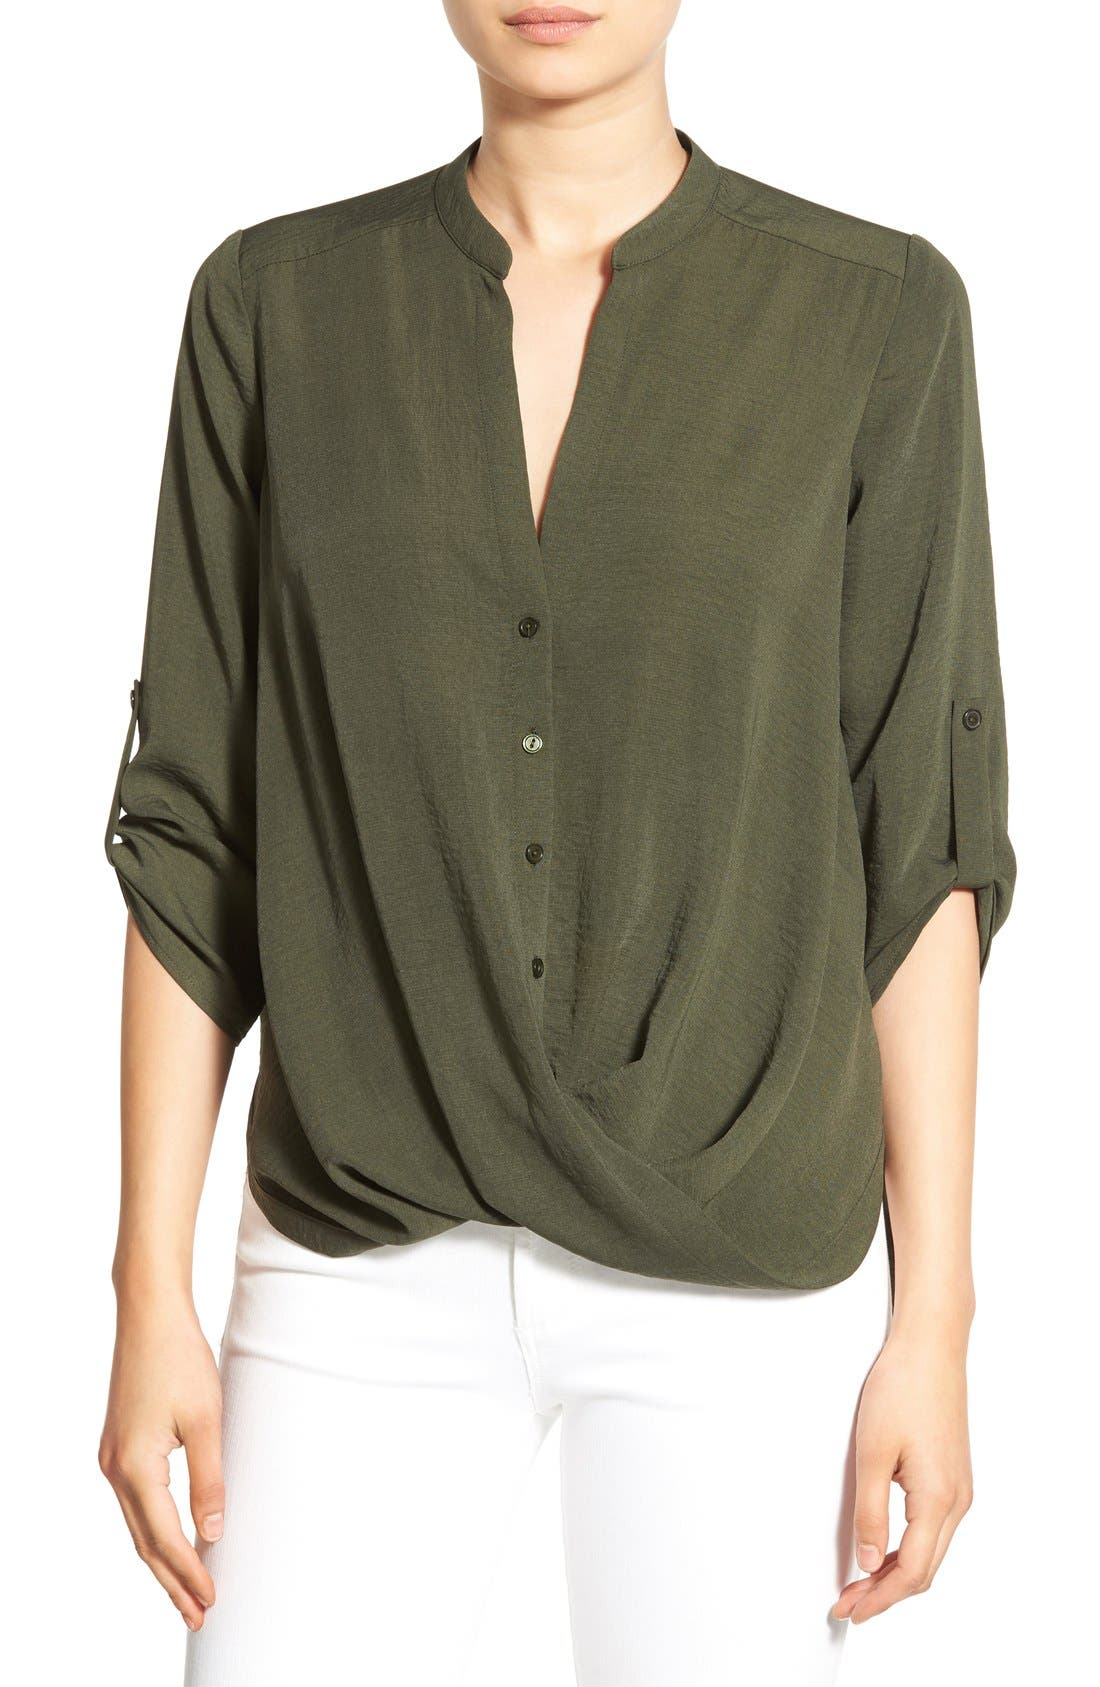 Alternate Image 1 Selected - Lush Twist Front Woven Shirt